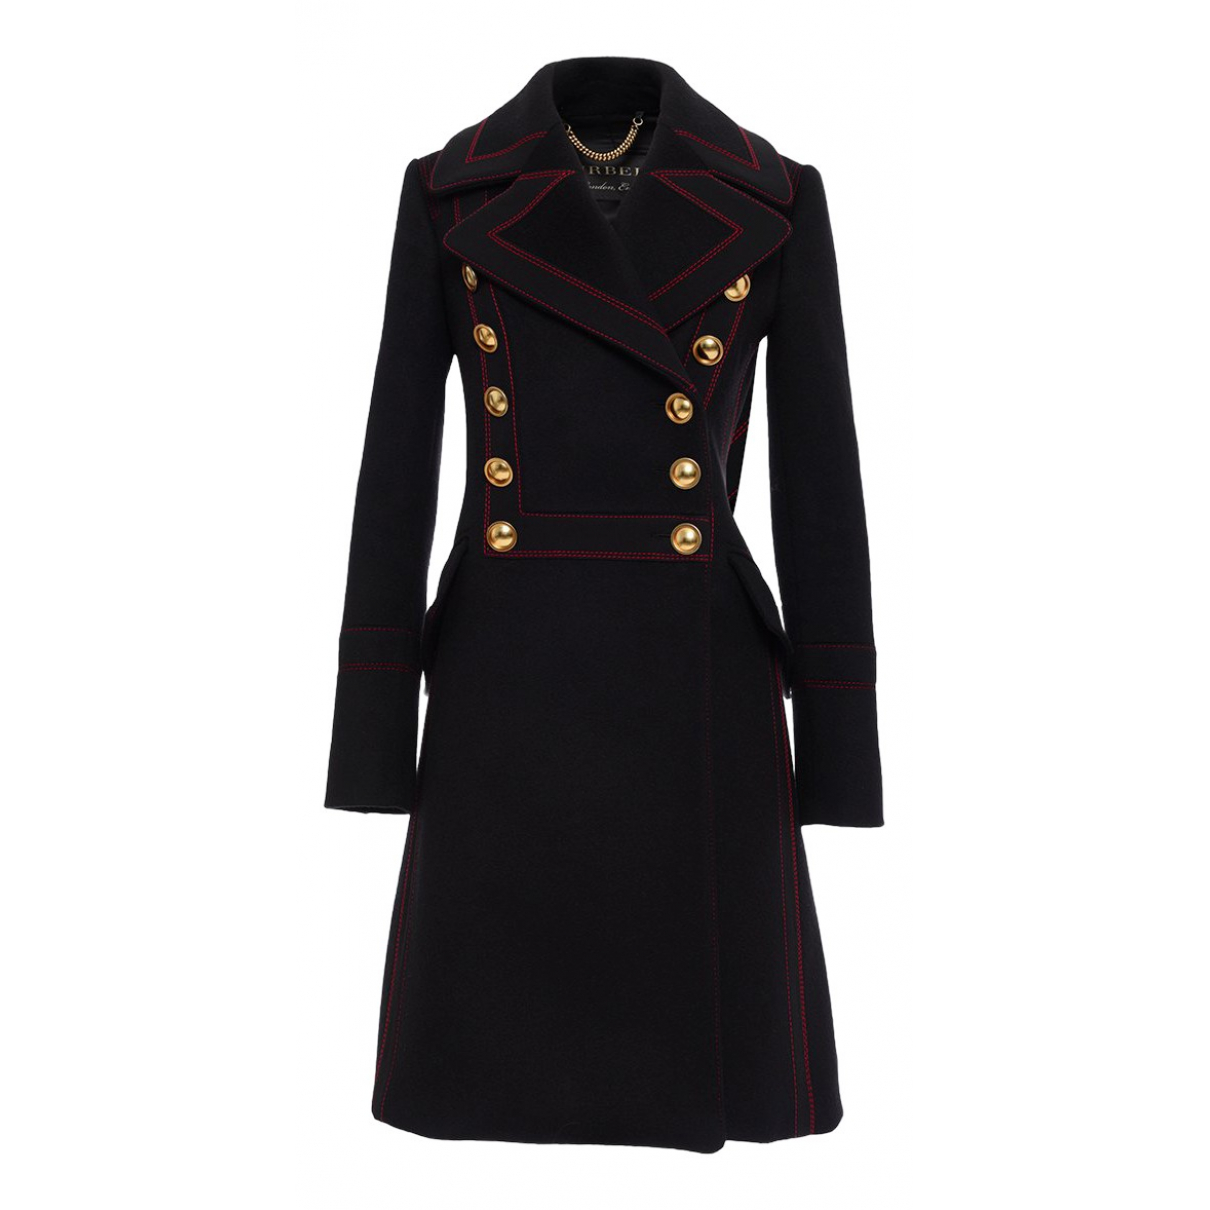 Burberry \N Black Cashmere coat for Women 38 IT